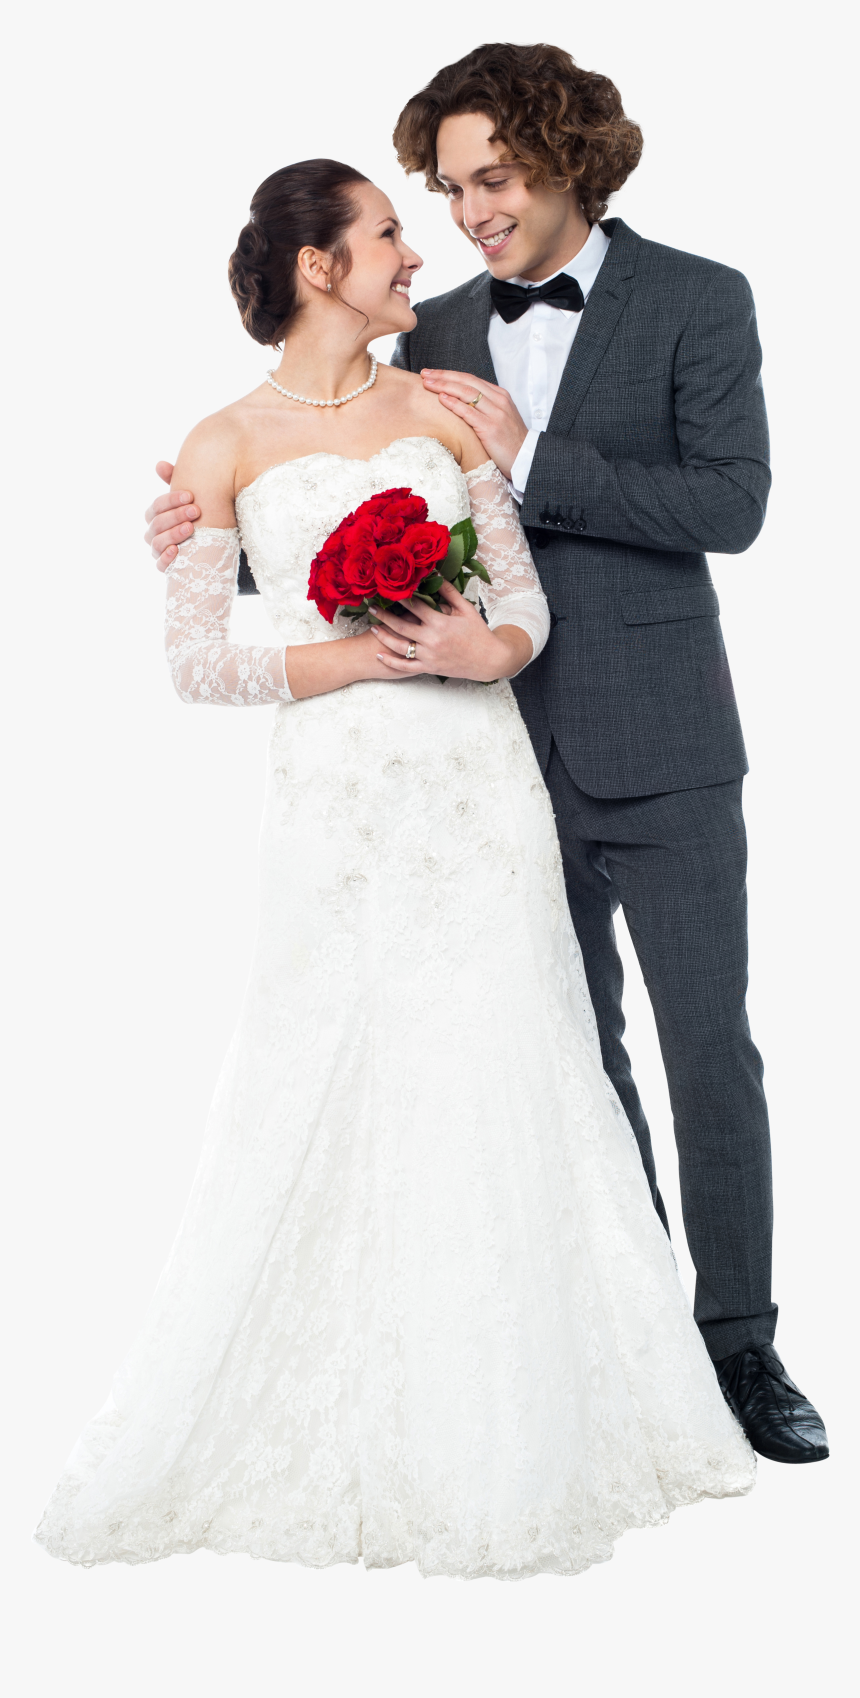 Married Couple Png Transparent Png Kindpng